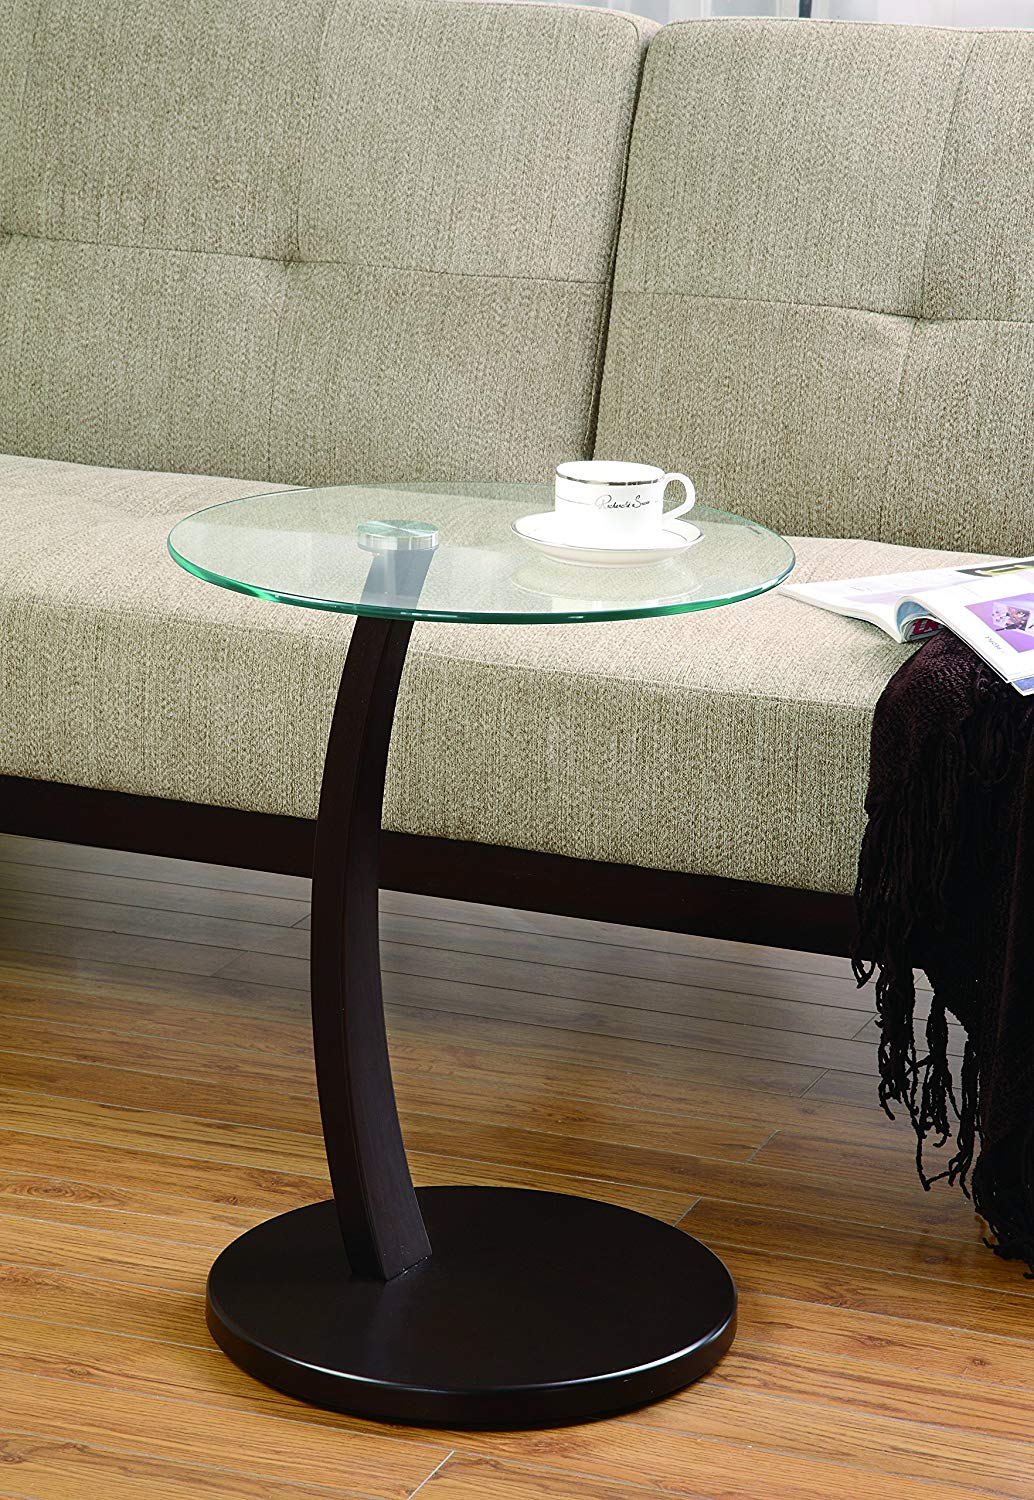 coaster home furnishings accent table with round glass top cappuccino and clear kitchen dining beach furniture pier one candles target standing lamp oak nest tables end threshold